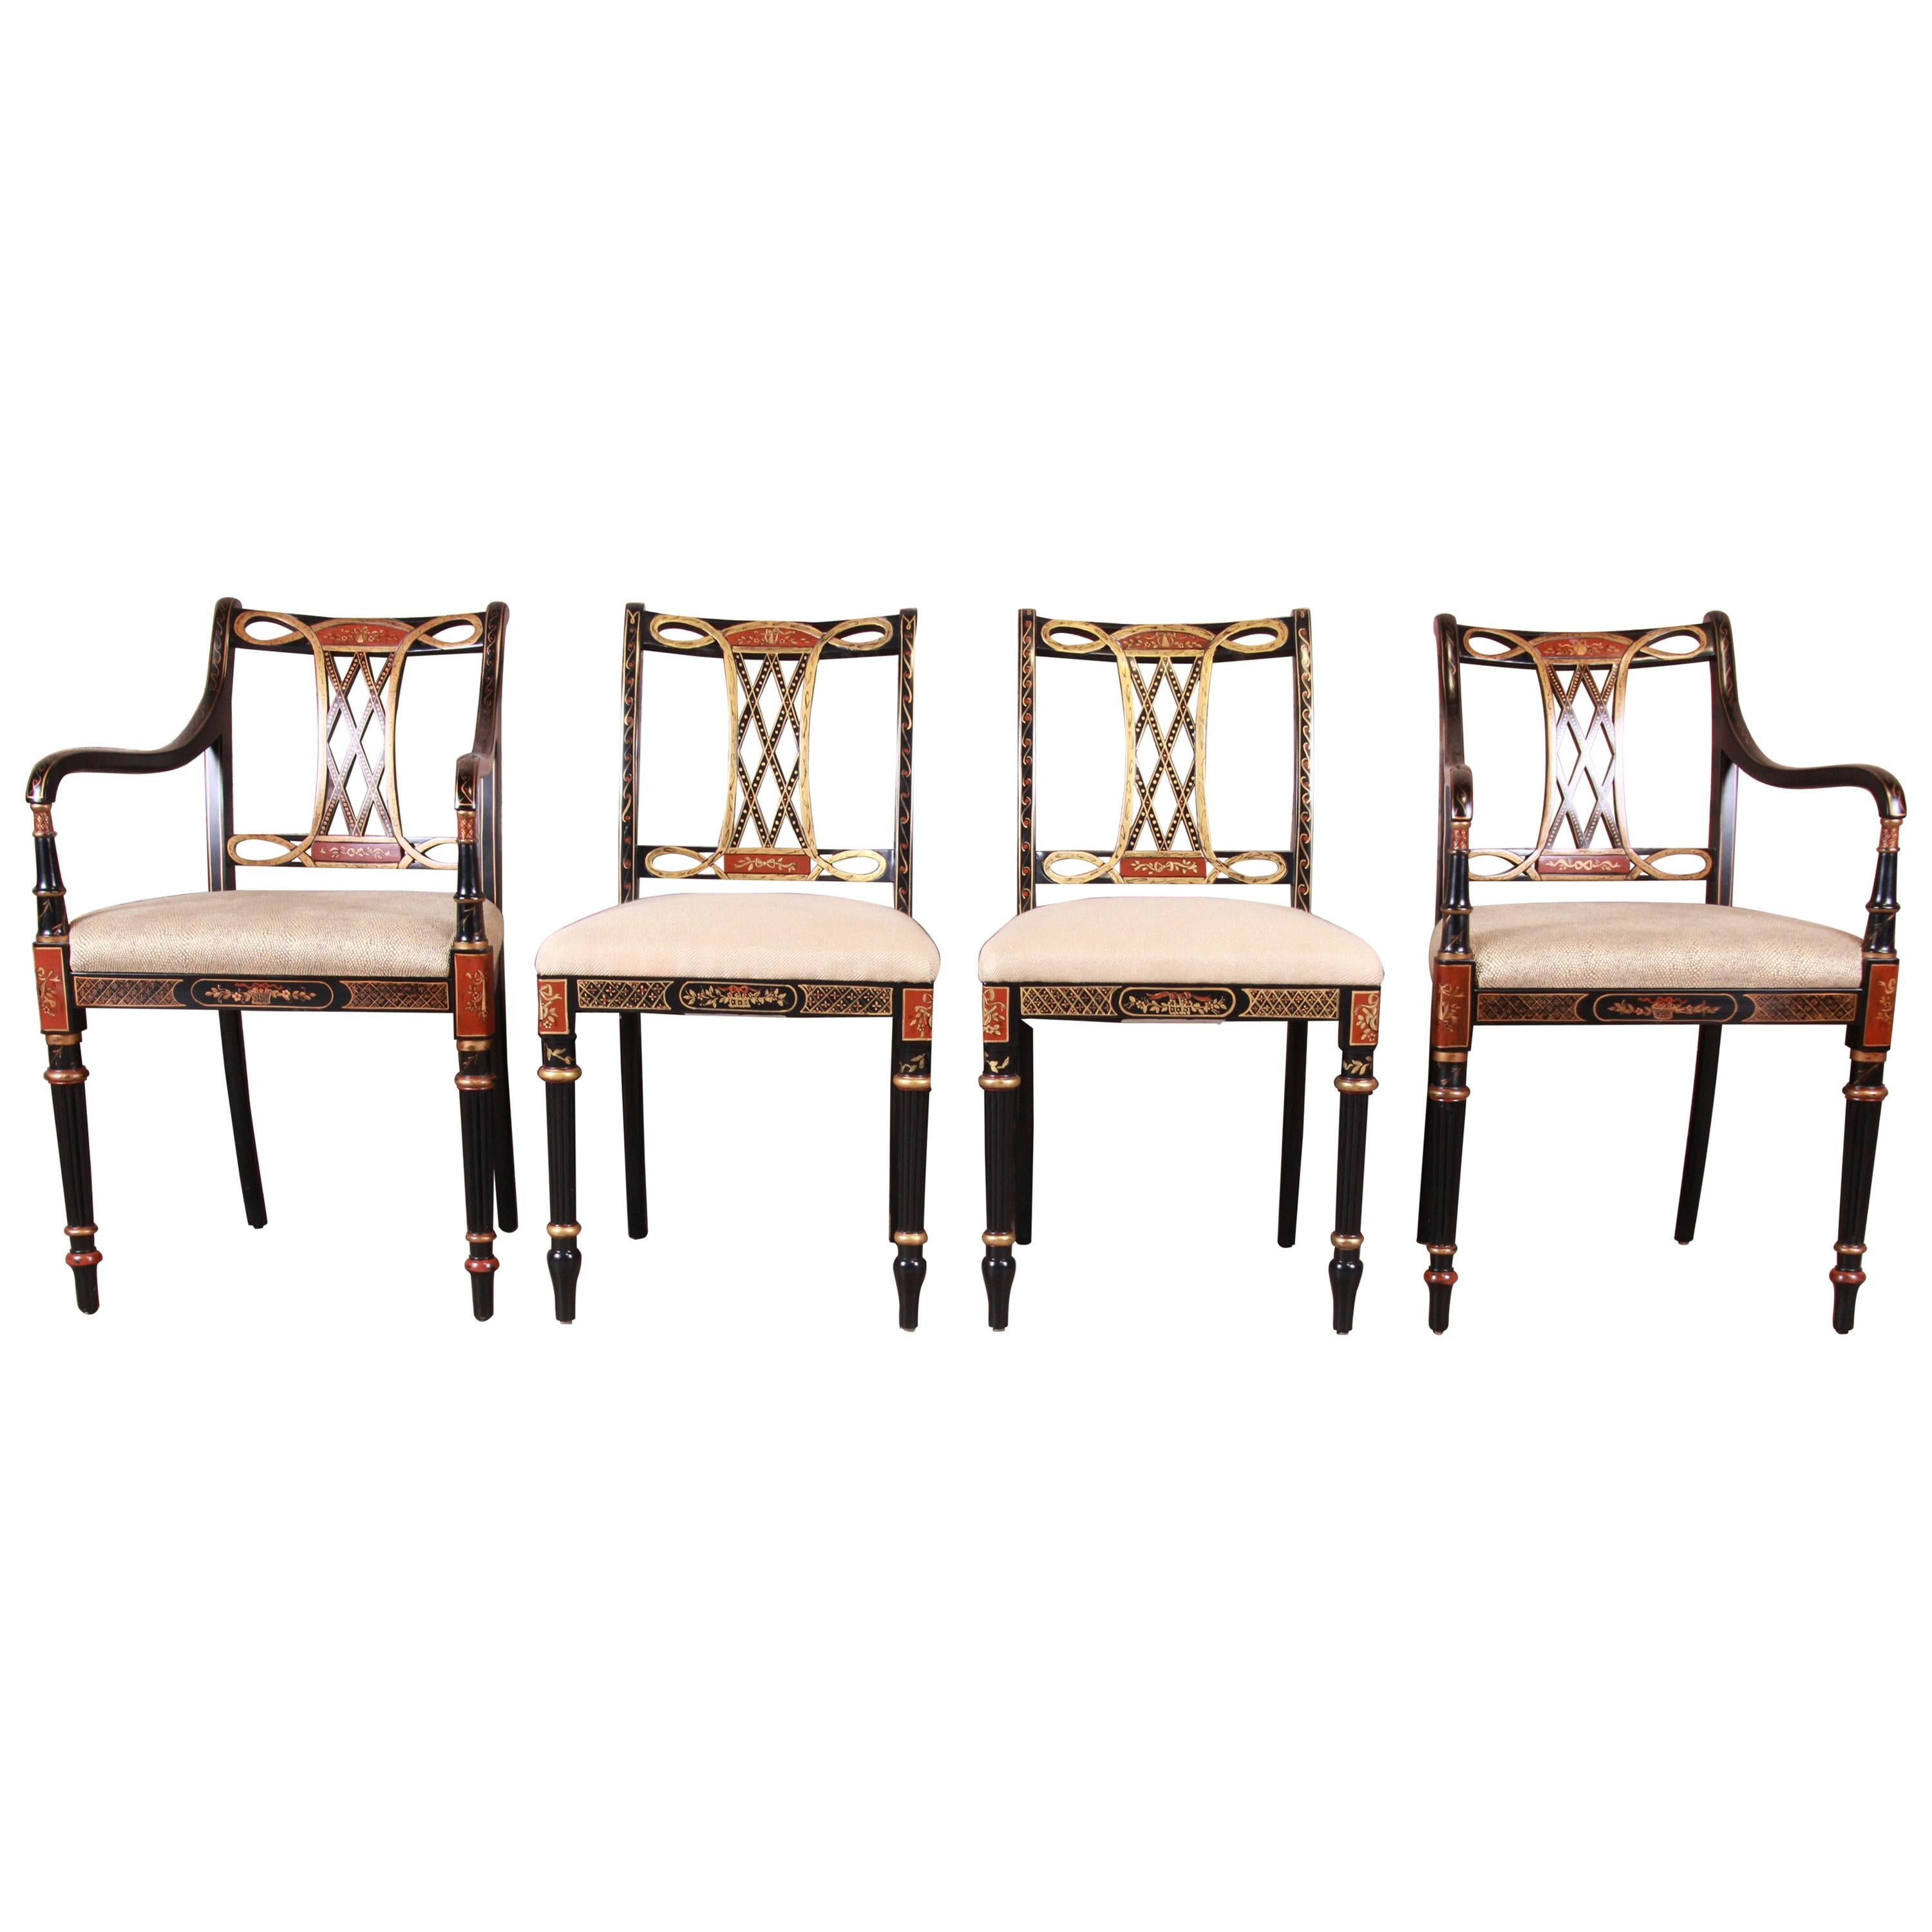 Councill Regency Ebonized Hand Painted Dining Chairs, Set of Four